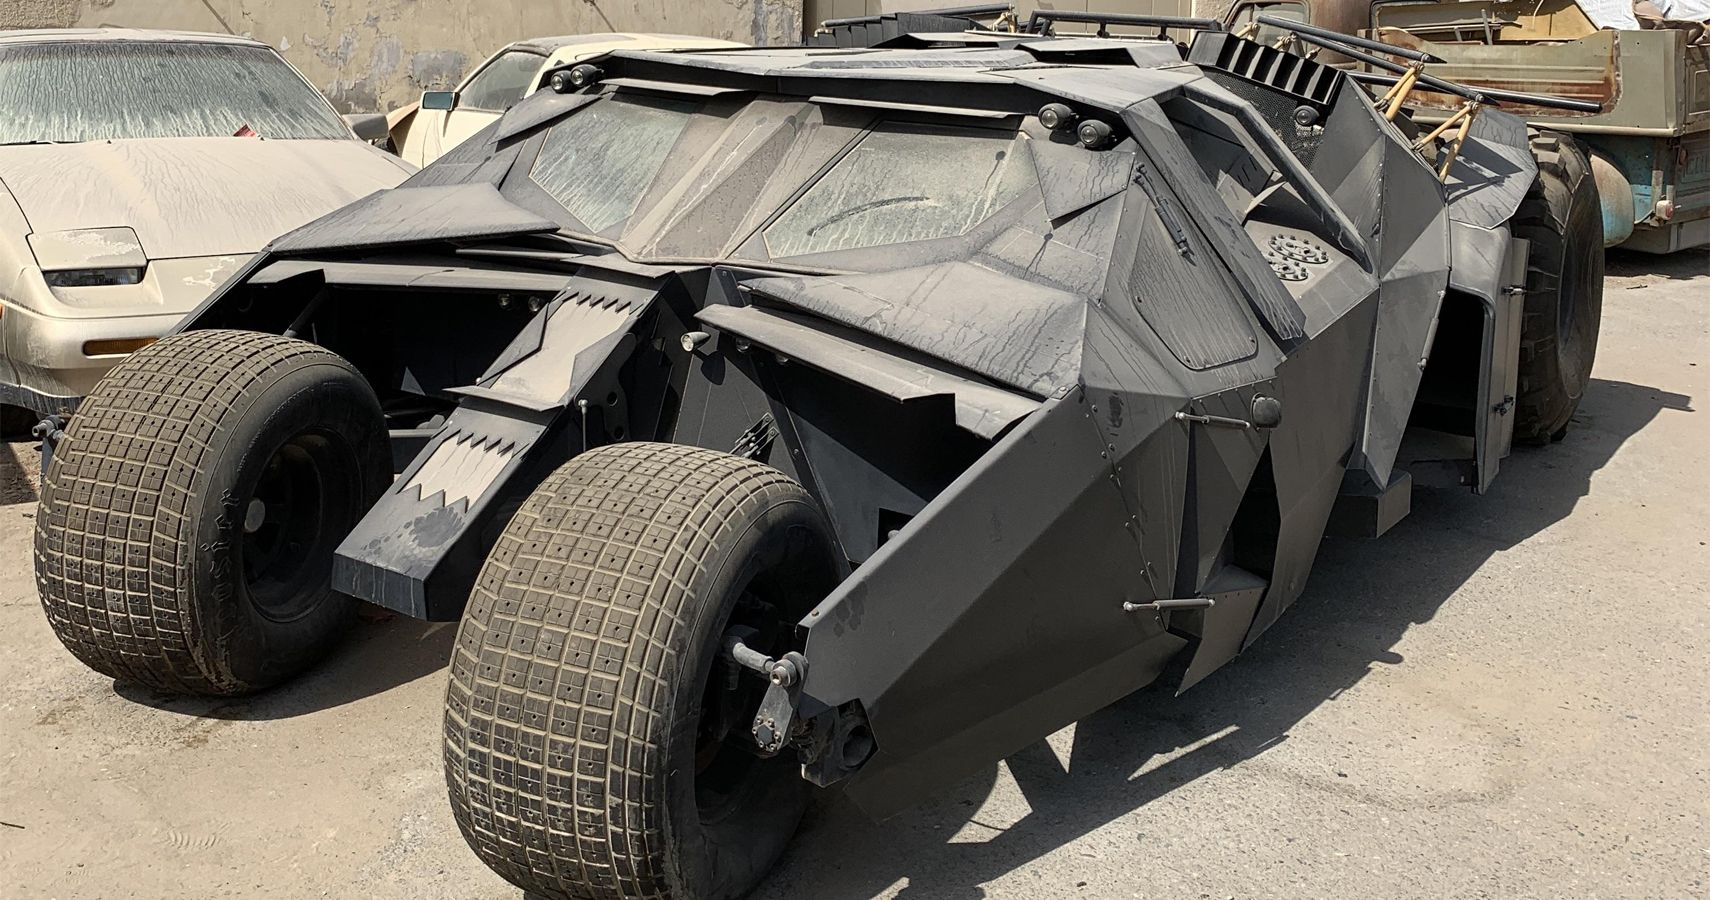 Near-Abandoned Batmobile From Christopher Nolan's Trilogy Found In Dubai